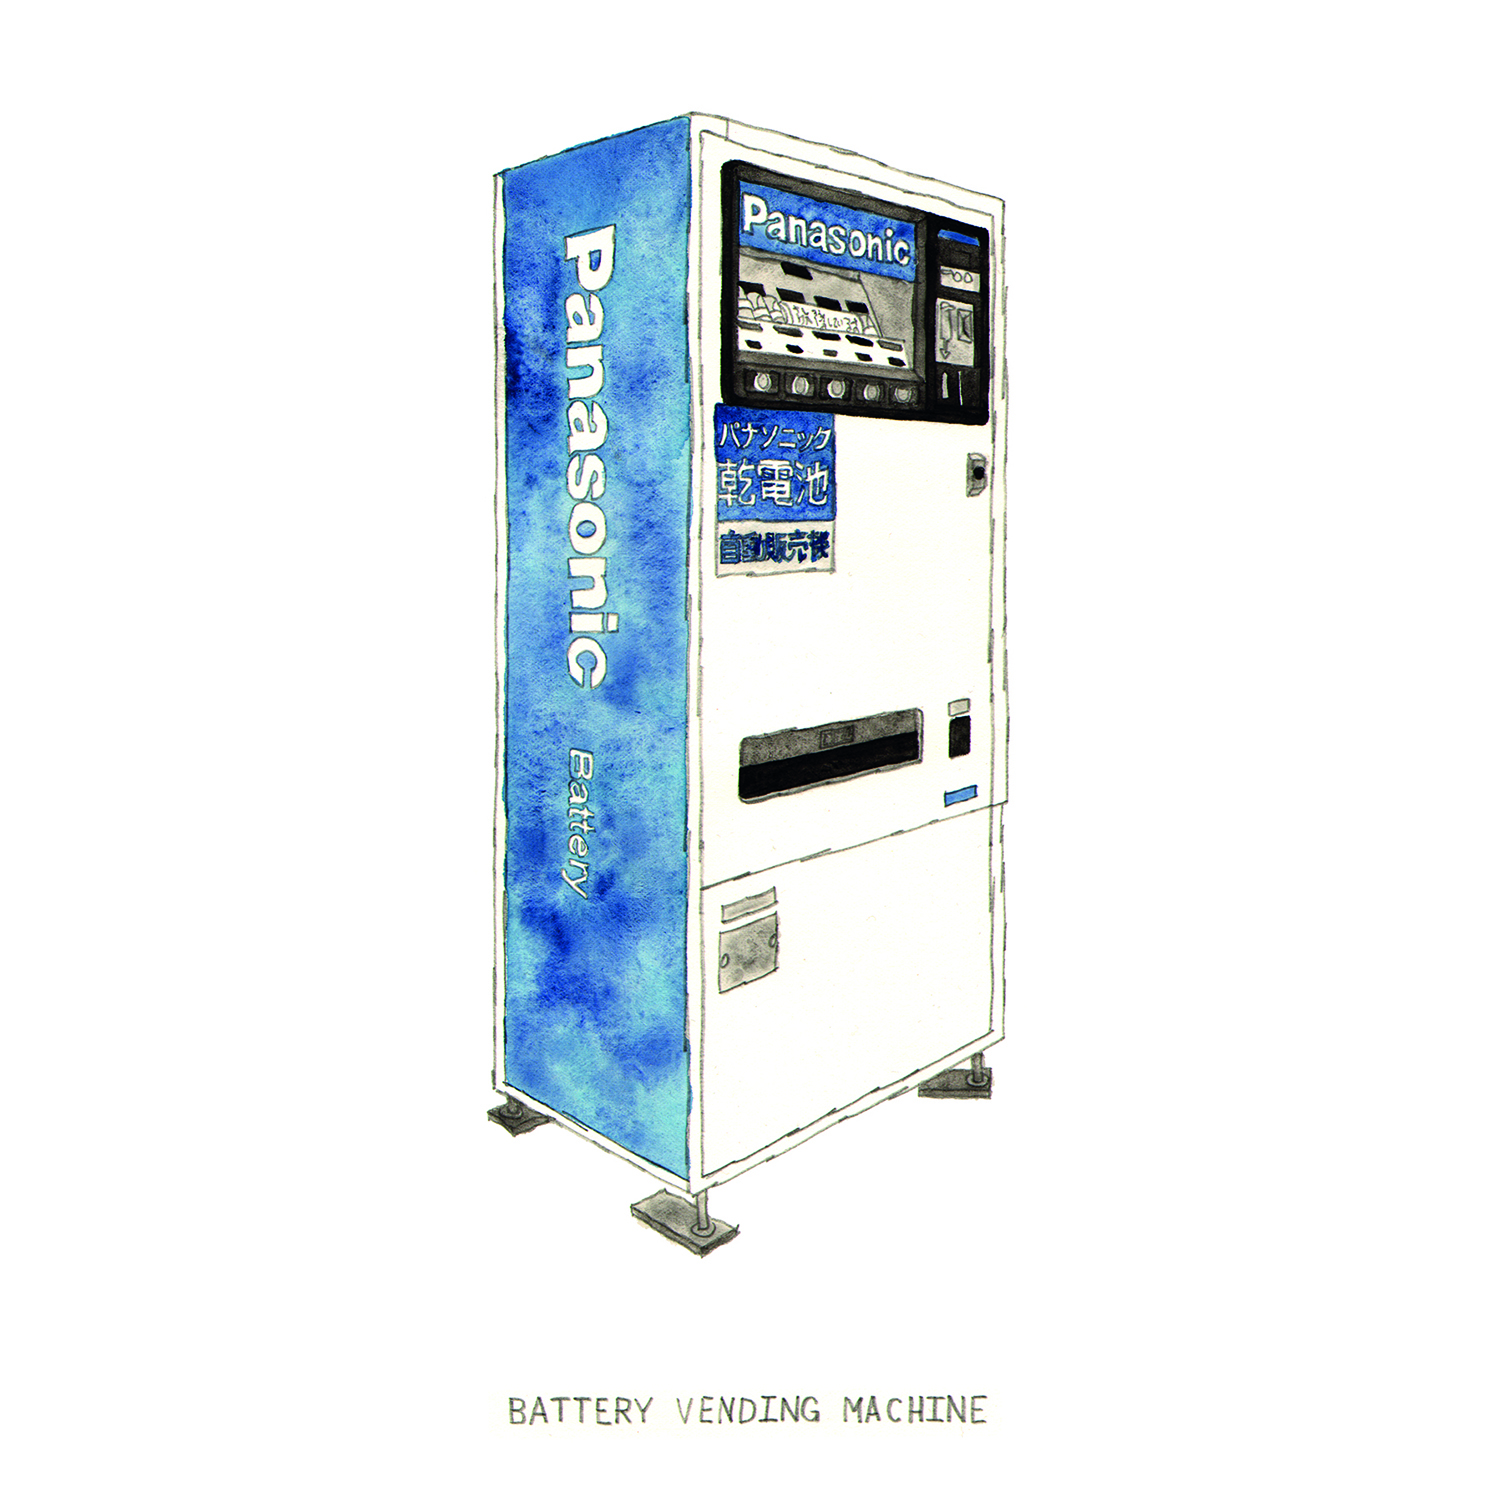 panasonic battery vending machine.jpg